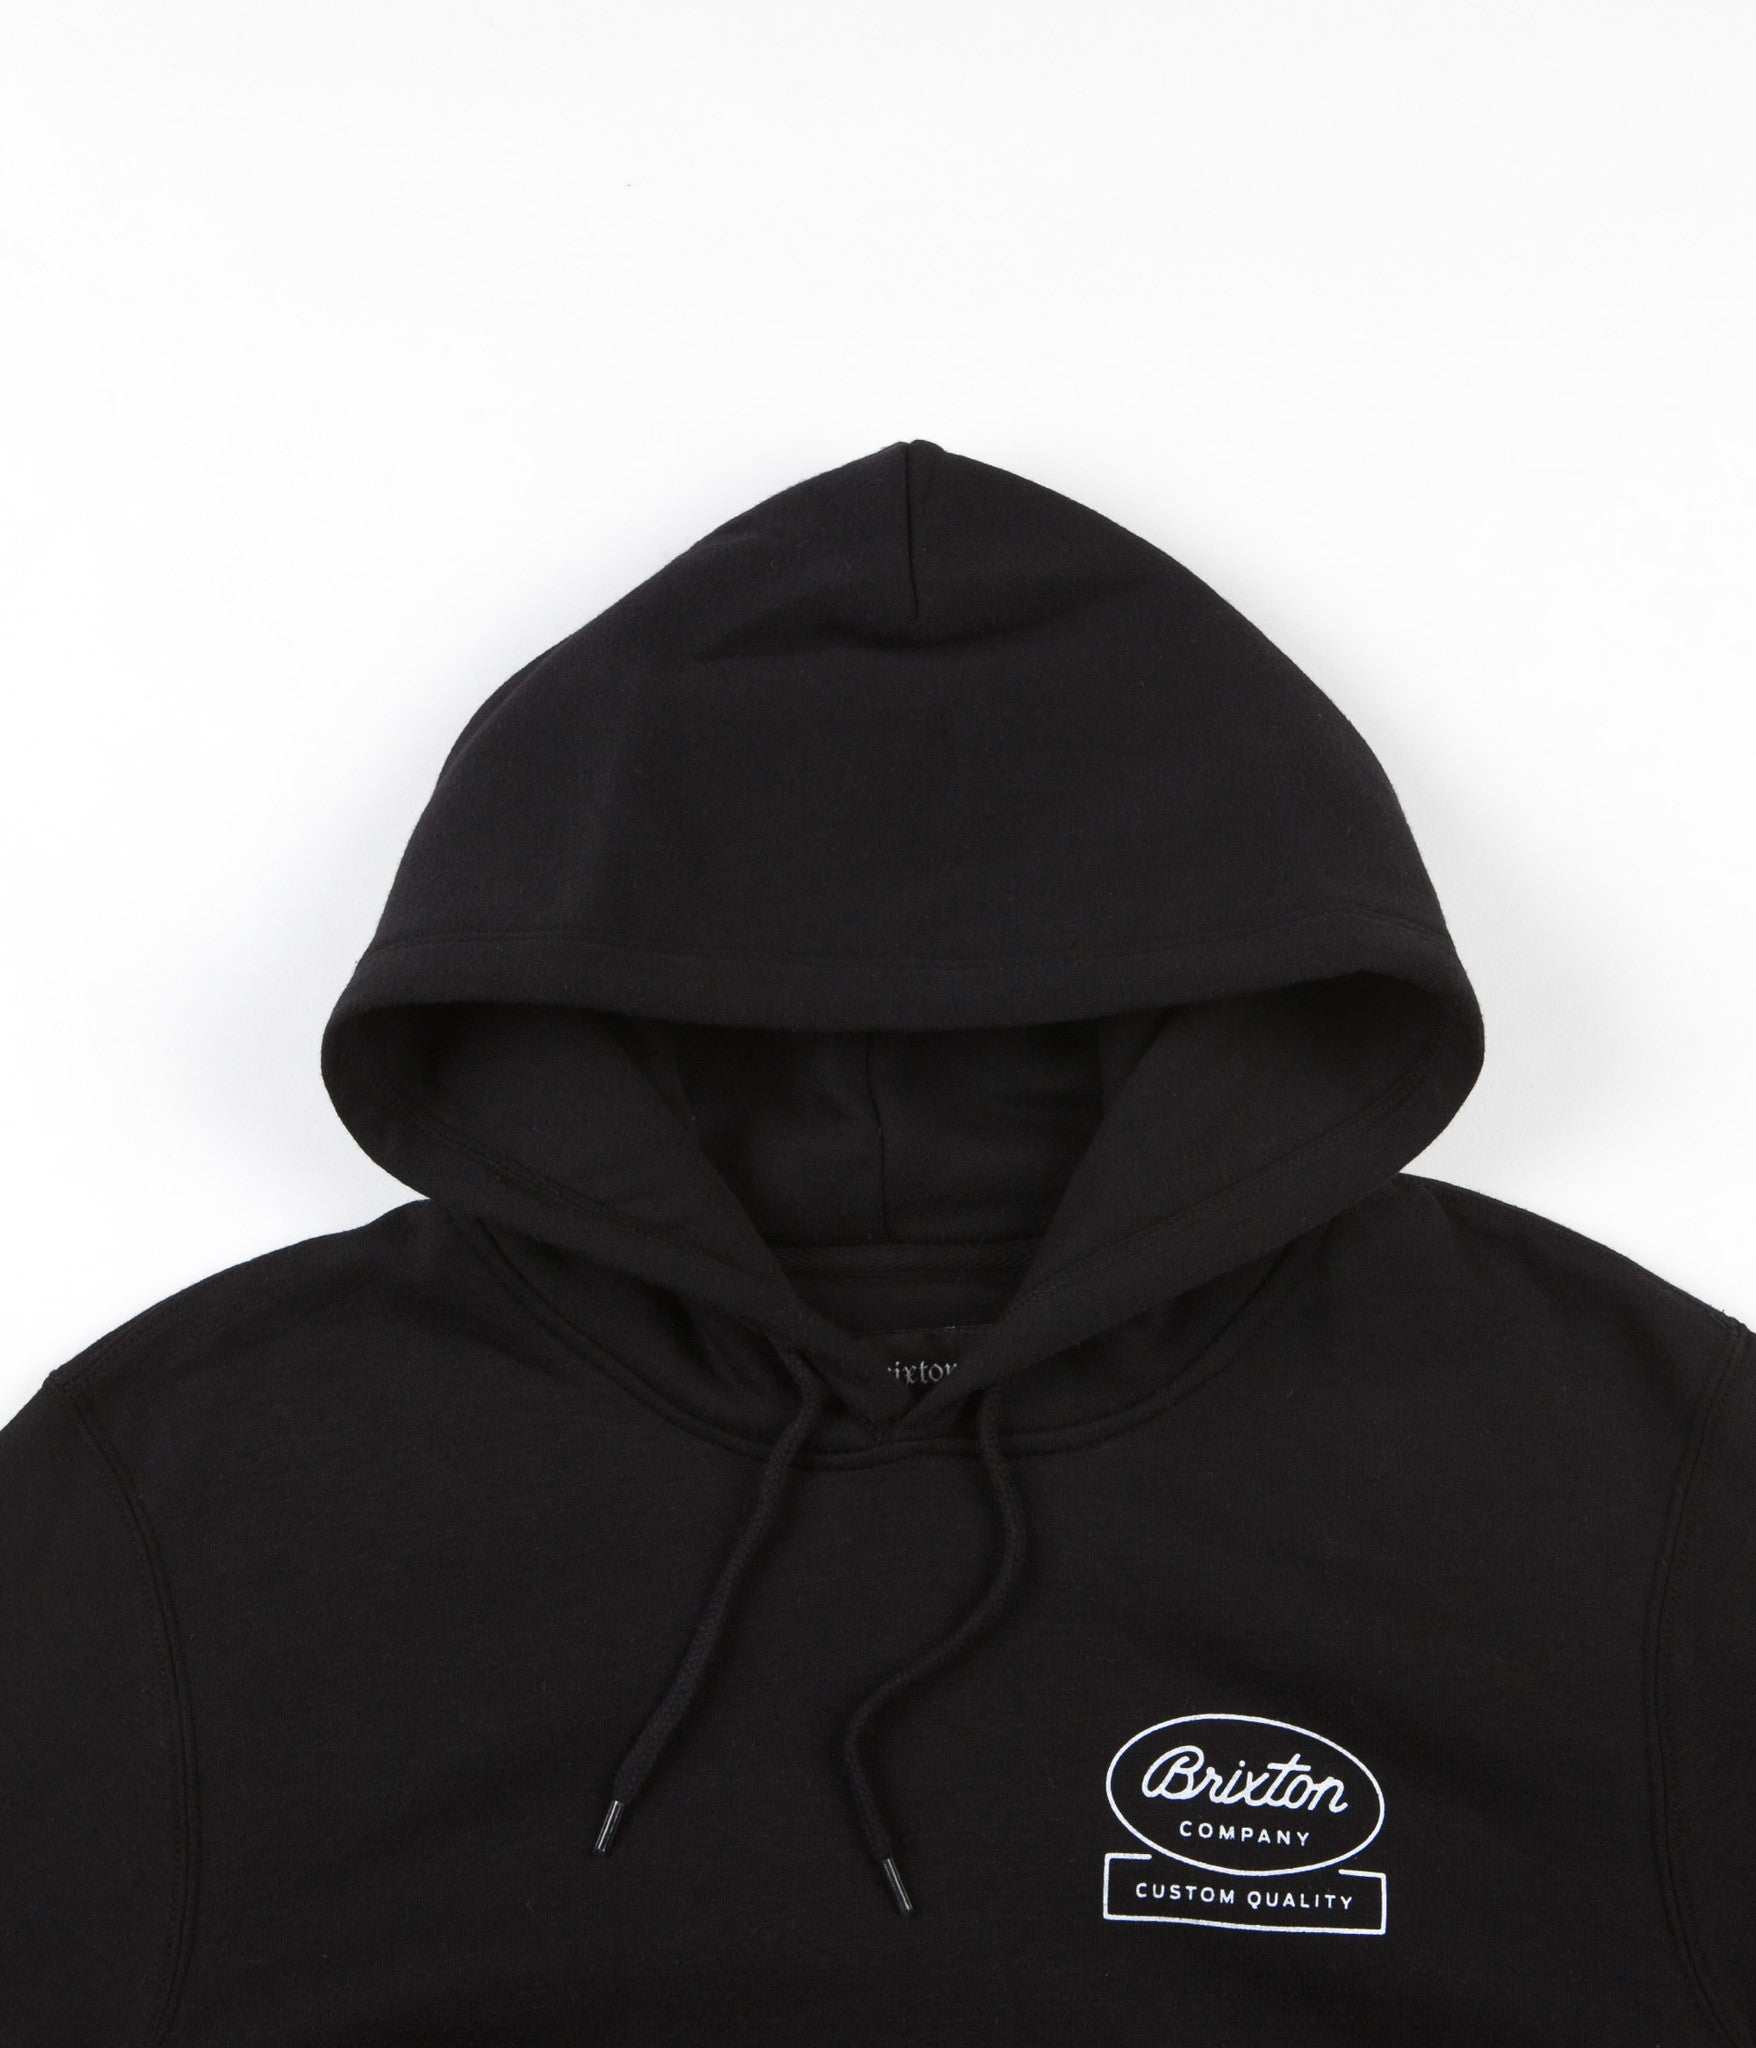 Brixton Dale Hooded Sweatshirt - Black